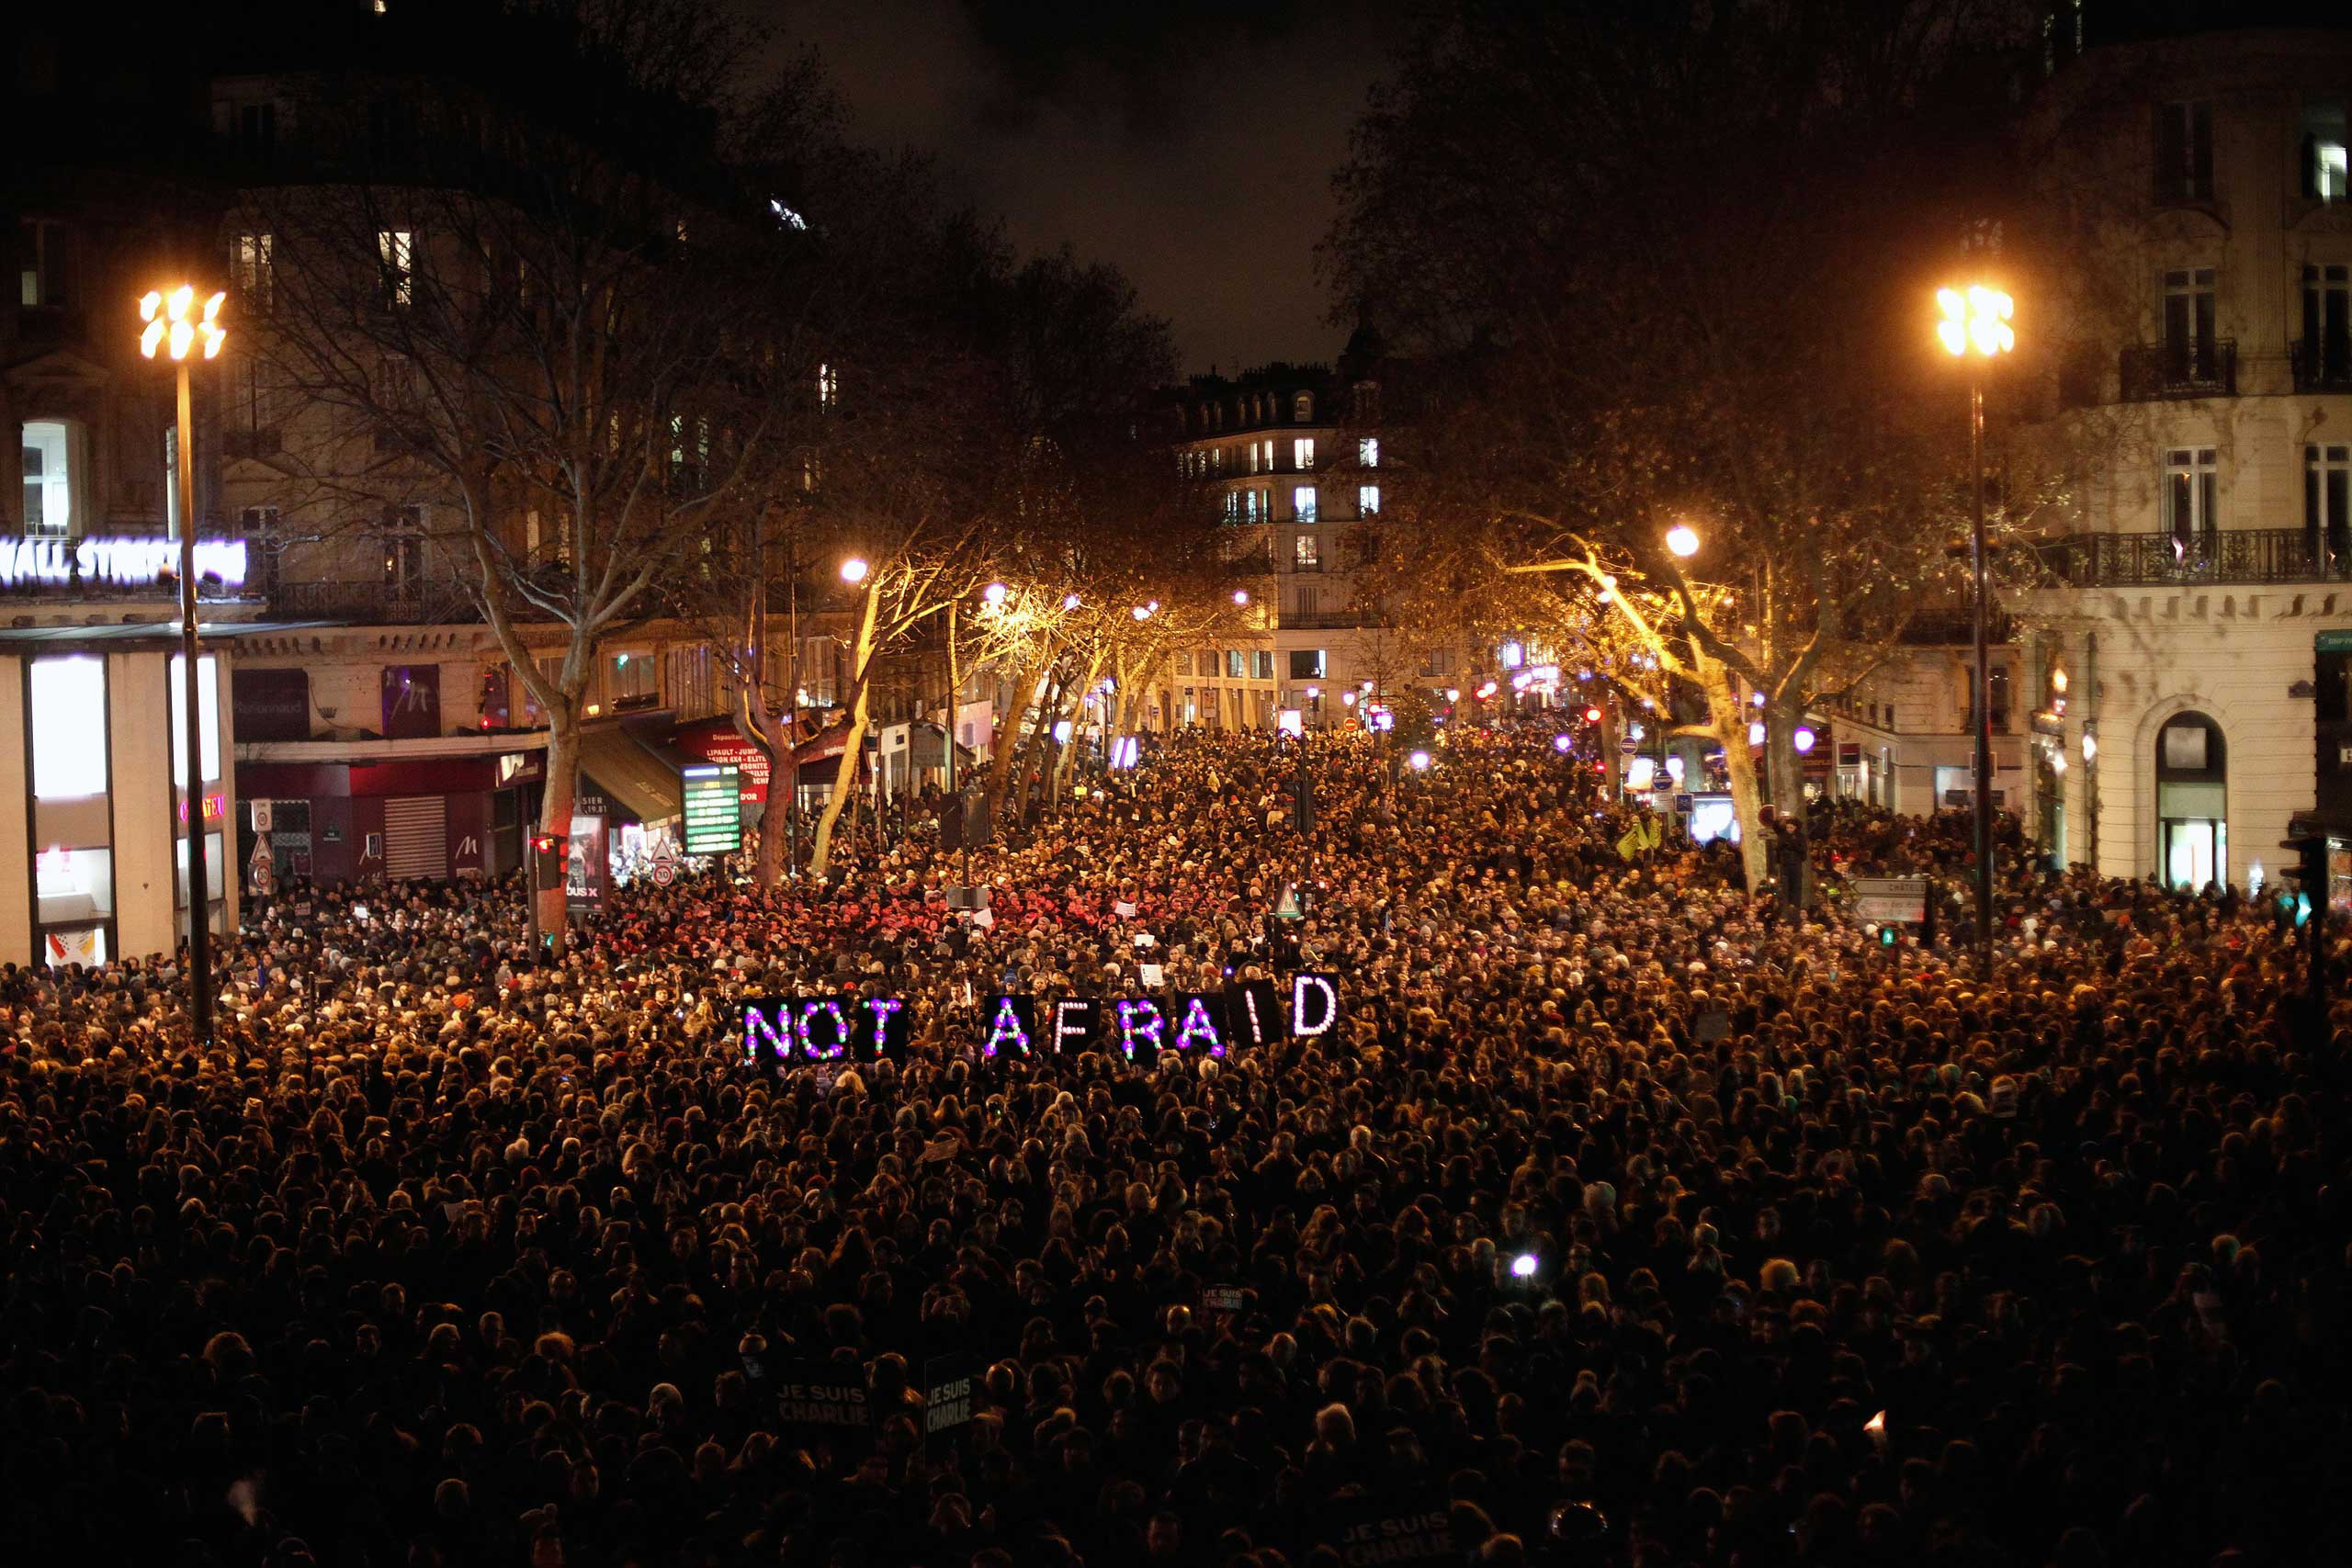 People gather to pay respect for the victims of a terror attack against a satirical newspaper, in Paris on Jan. 7, 2015.